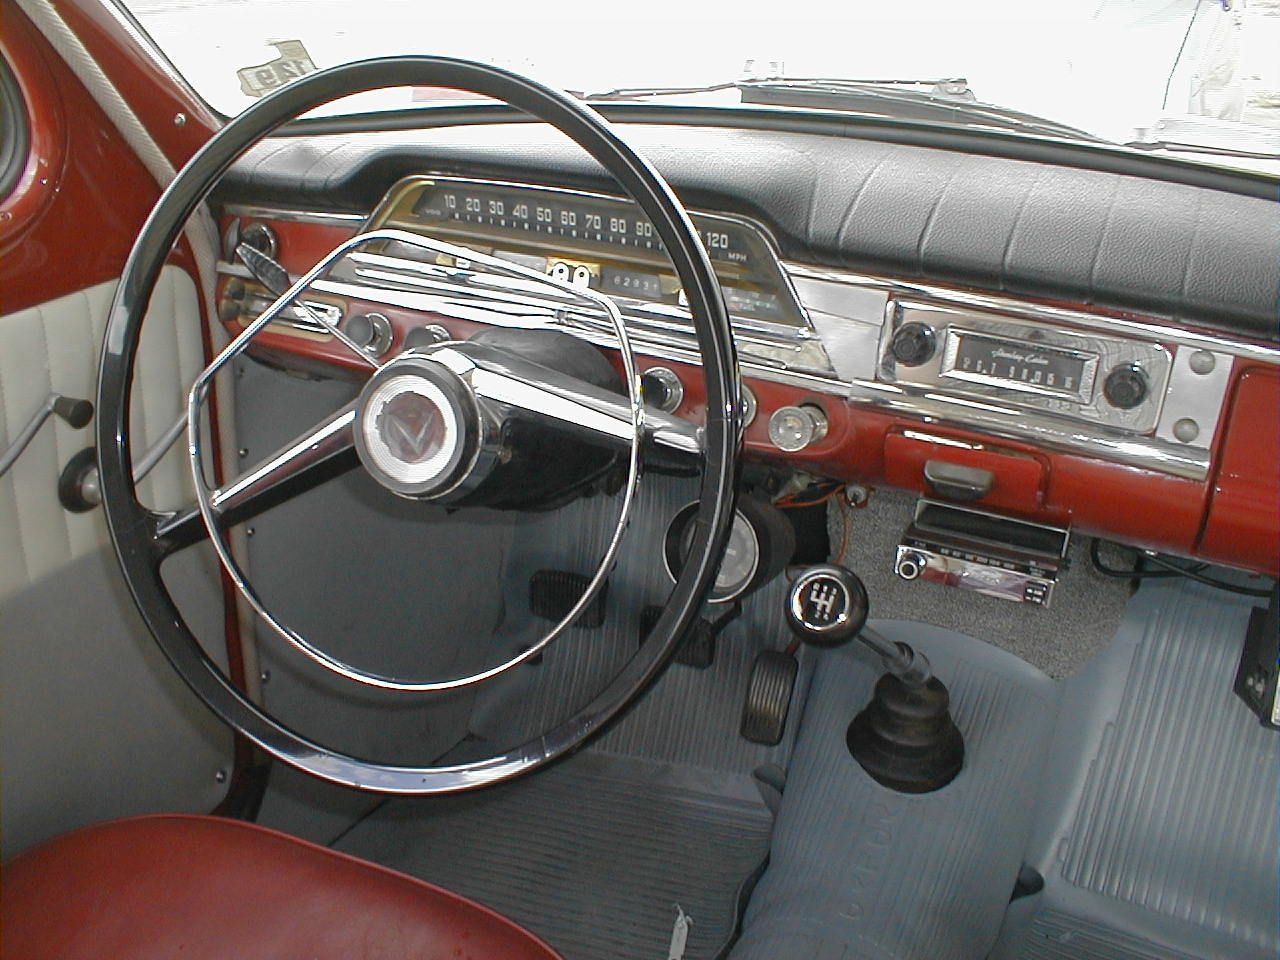 1959 Volvo PV 544 (Such improvements over the '58: 3 point seat belts and a  padded dash).